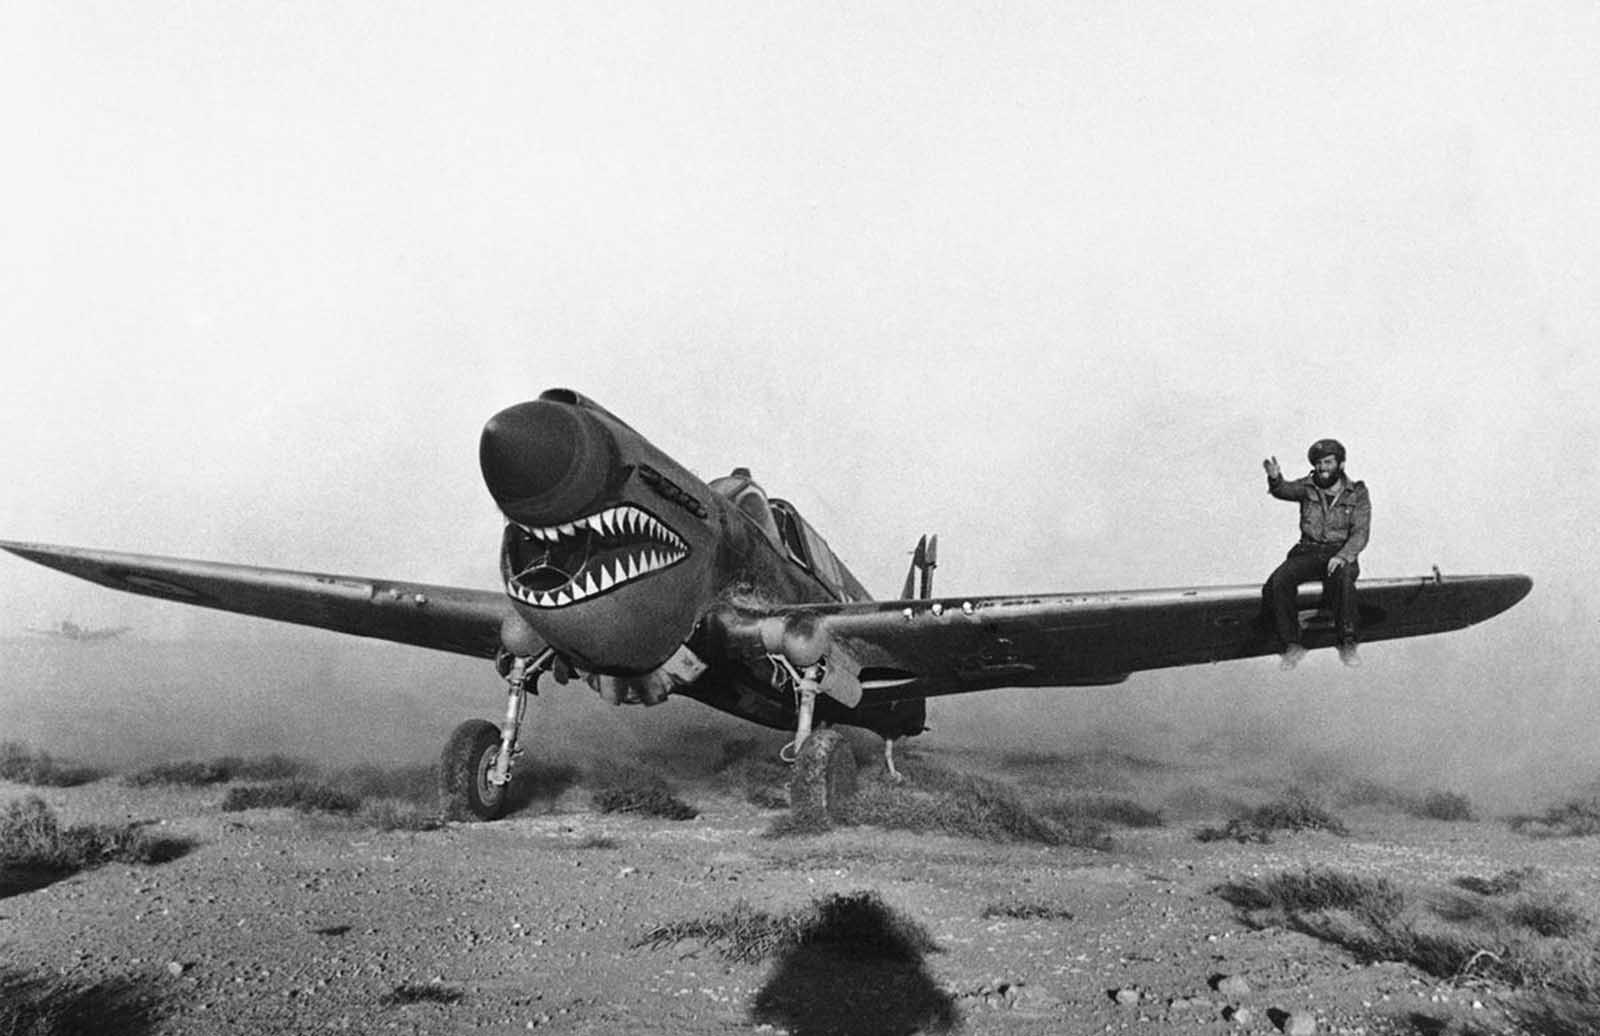 Experienced in desert weather flying, a British pilot lands an American made Kittyhawk fighter plane of the Sharknose Squadron in a Libyan Sandstorm, on April 2, 1942. A mechanic on the wing helps to guide the pilot as he taxis through the storm.